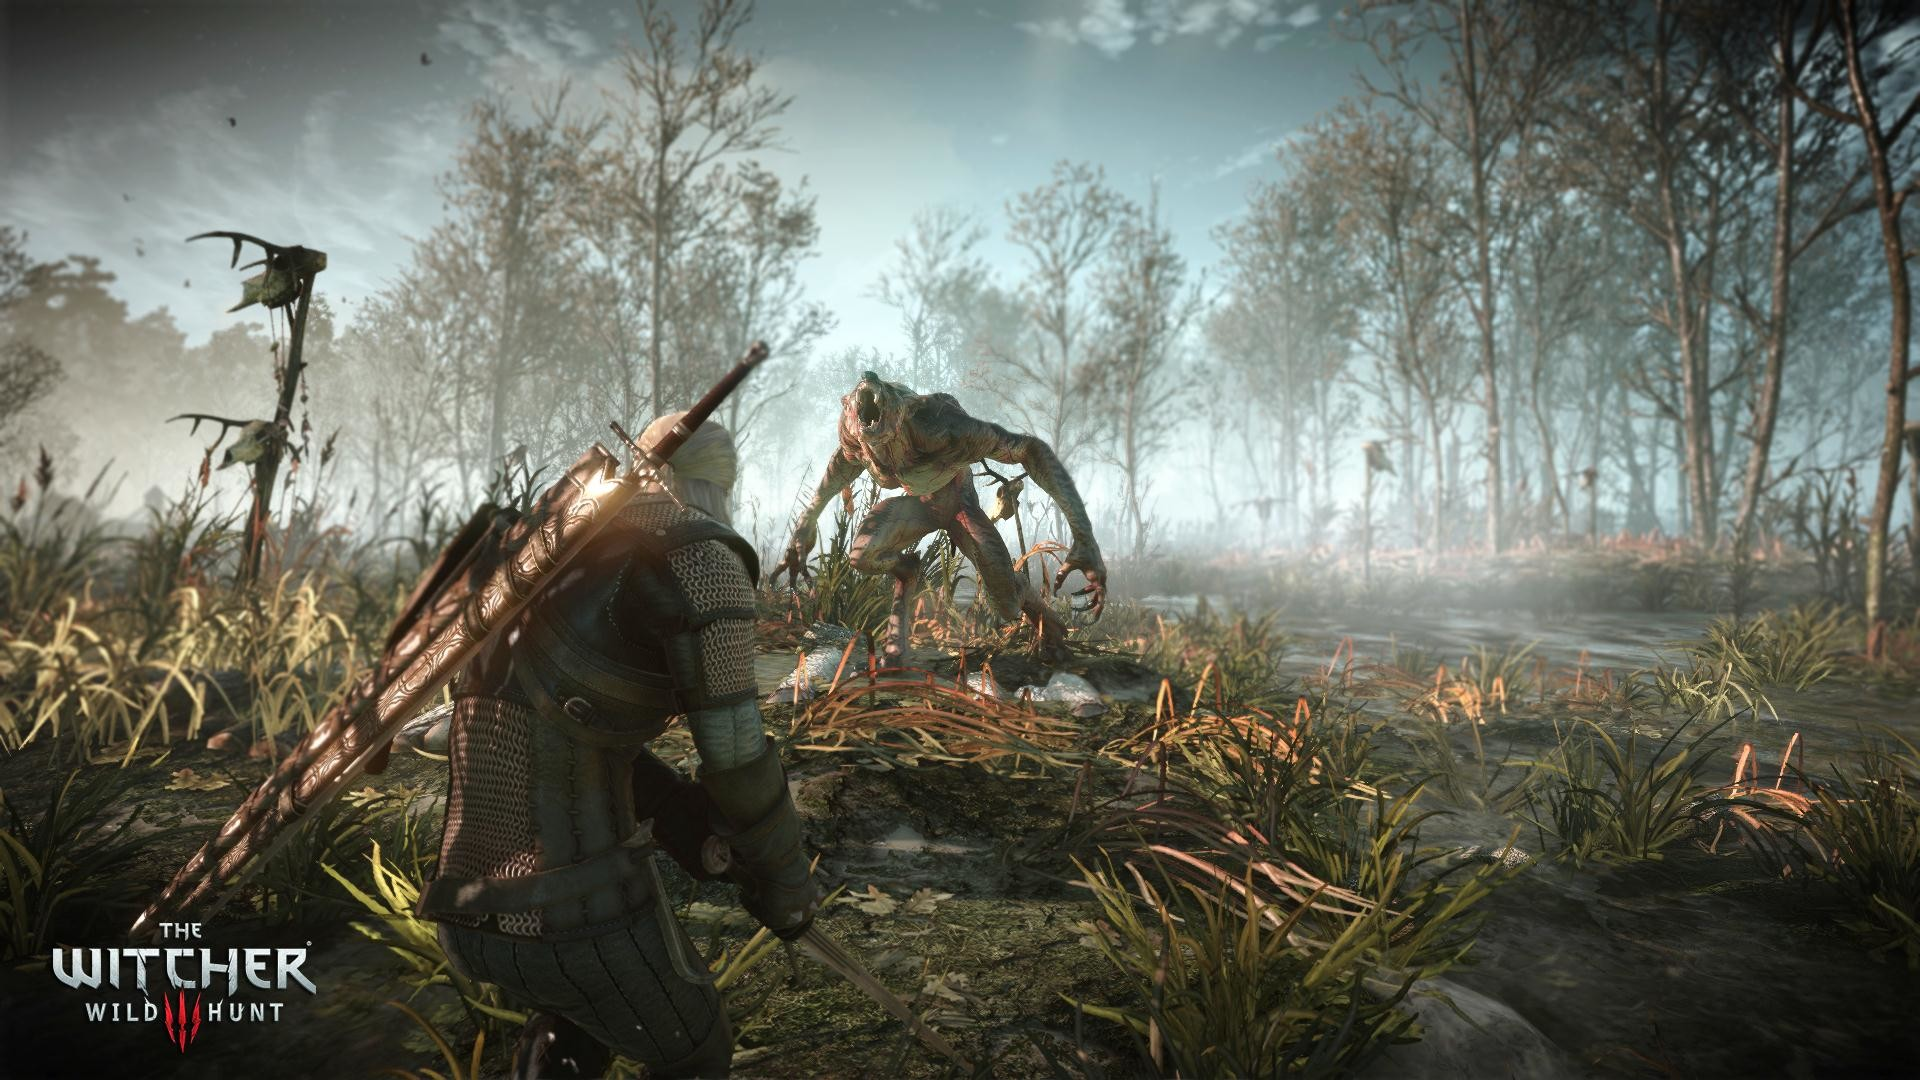 The witcher 3 video game wallpaper hd wallpapers.